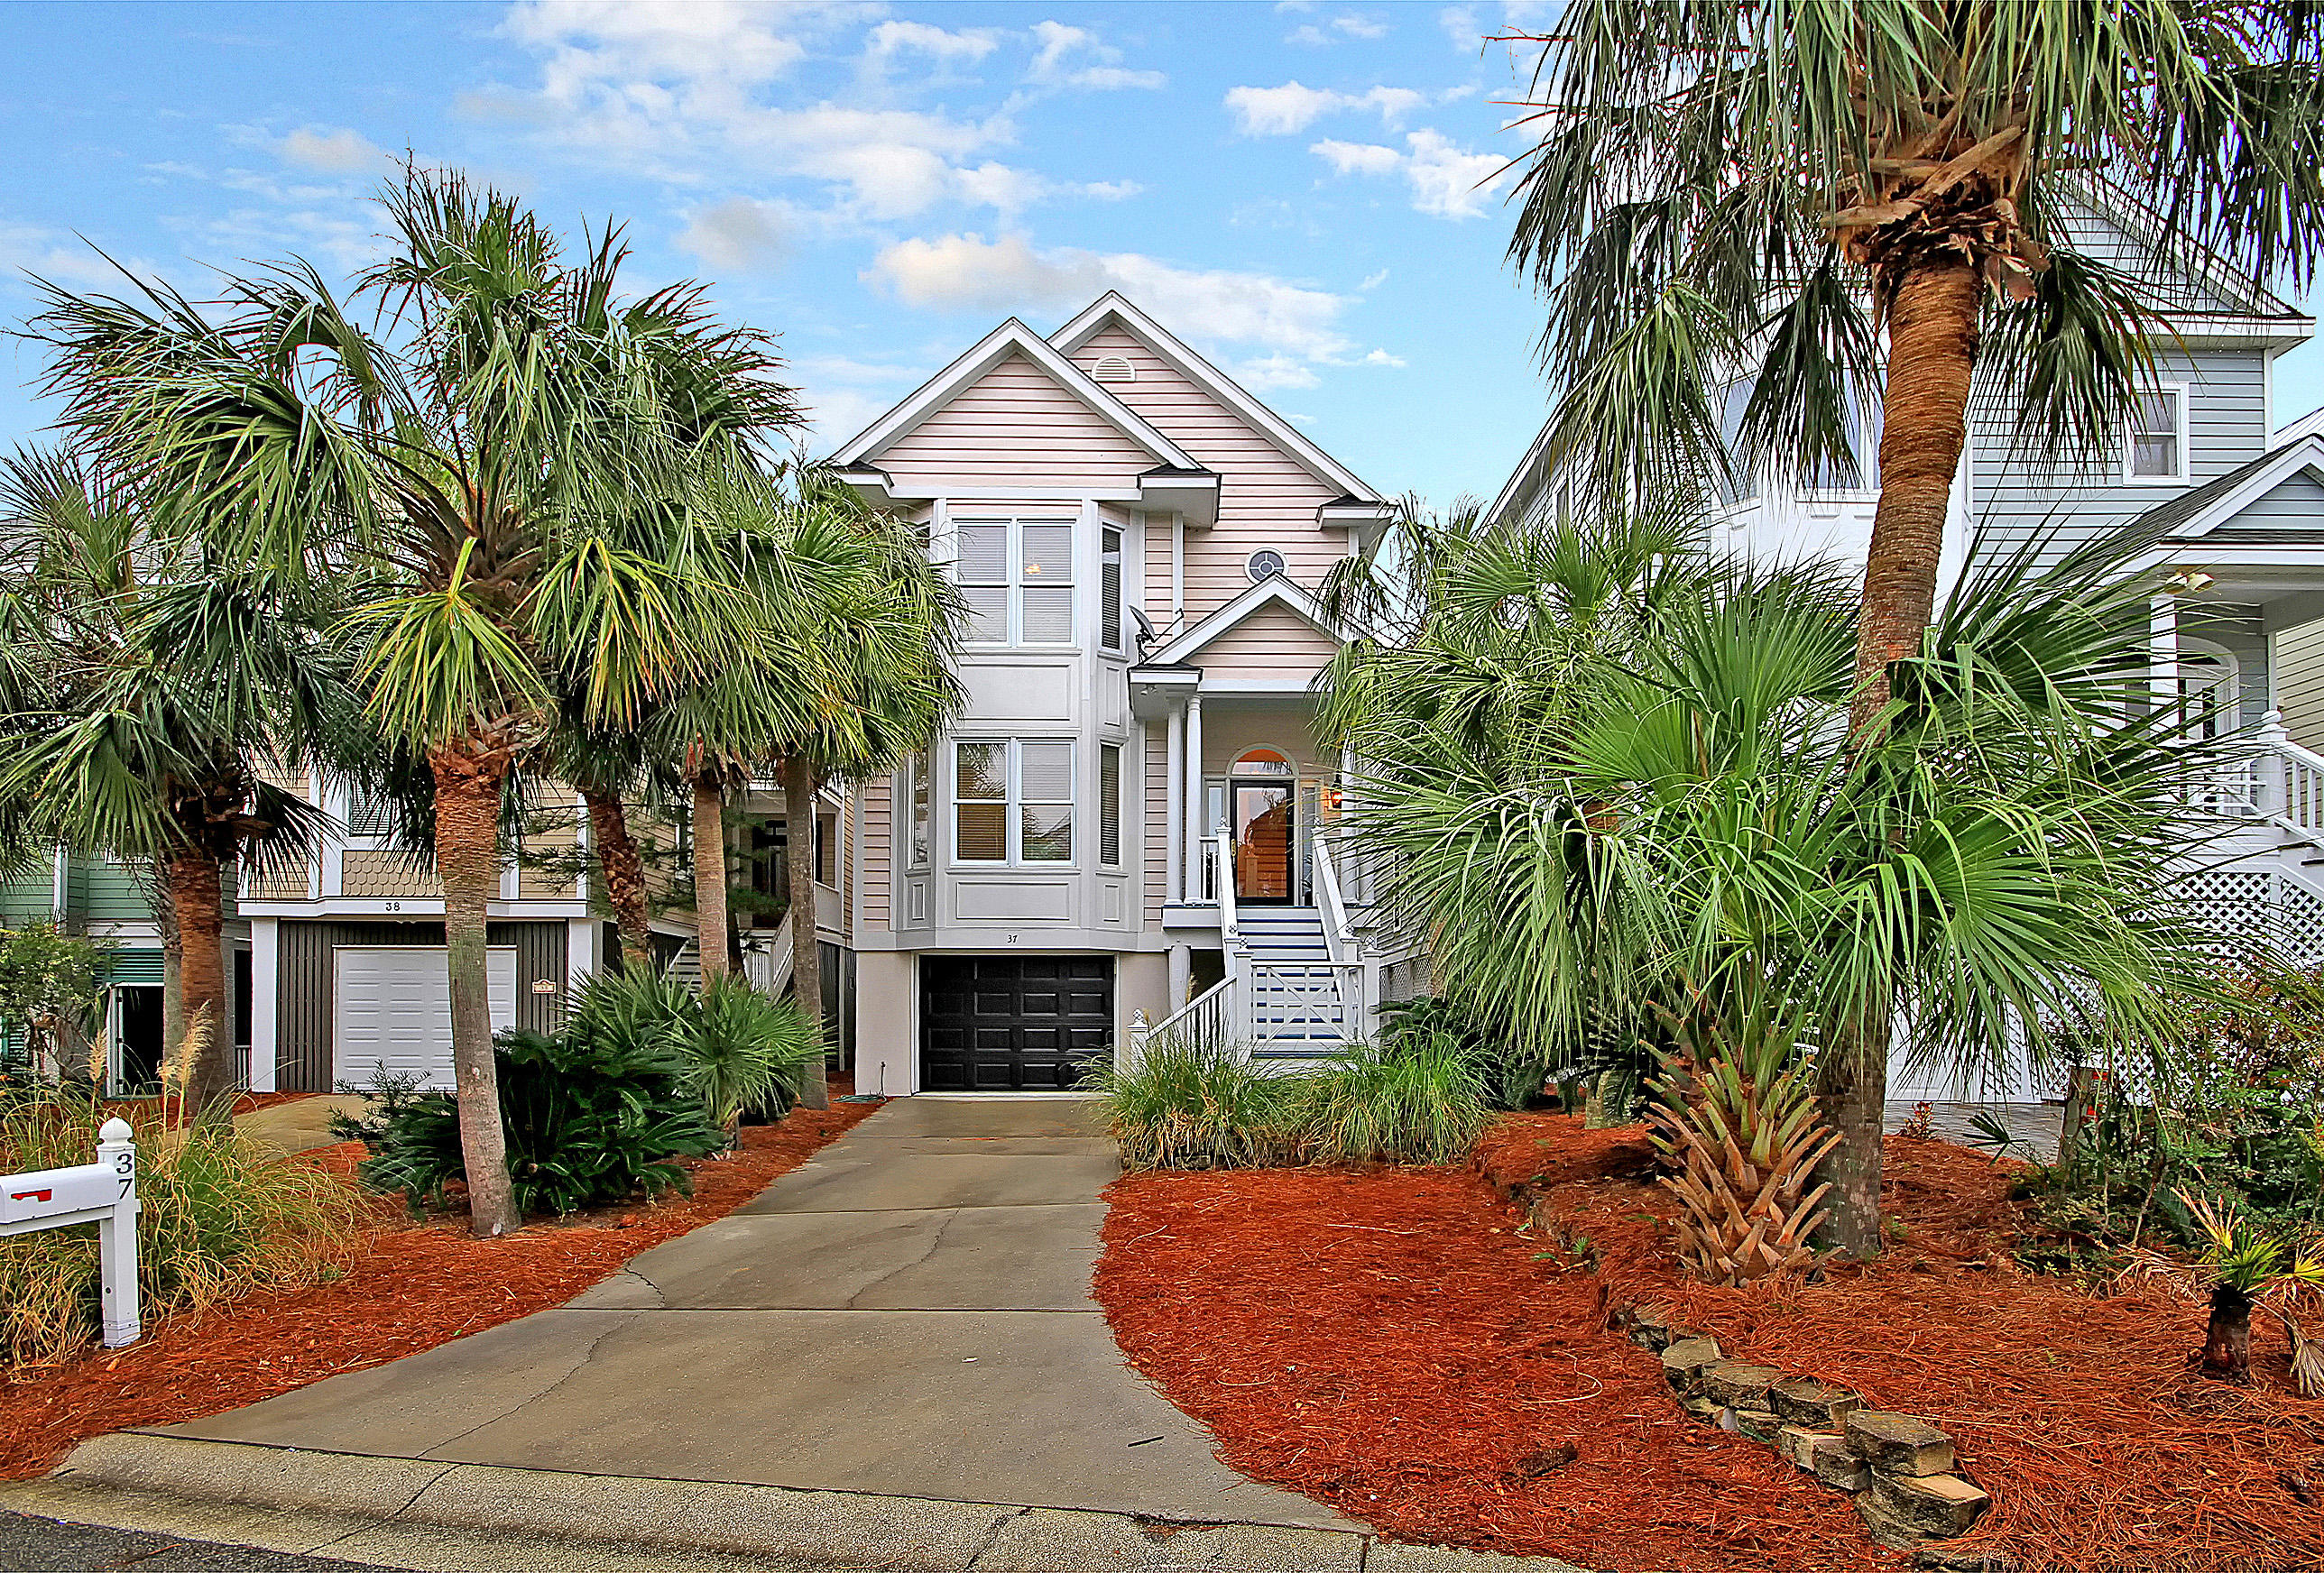 Wild Dunes Homes For Sale - 37 Ocean Point, Isle of Palms, SC - 55